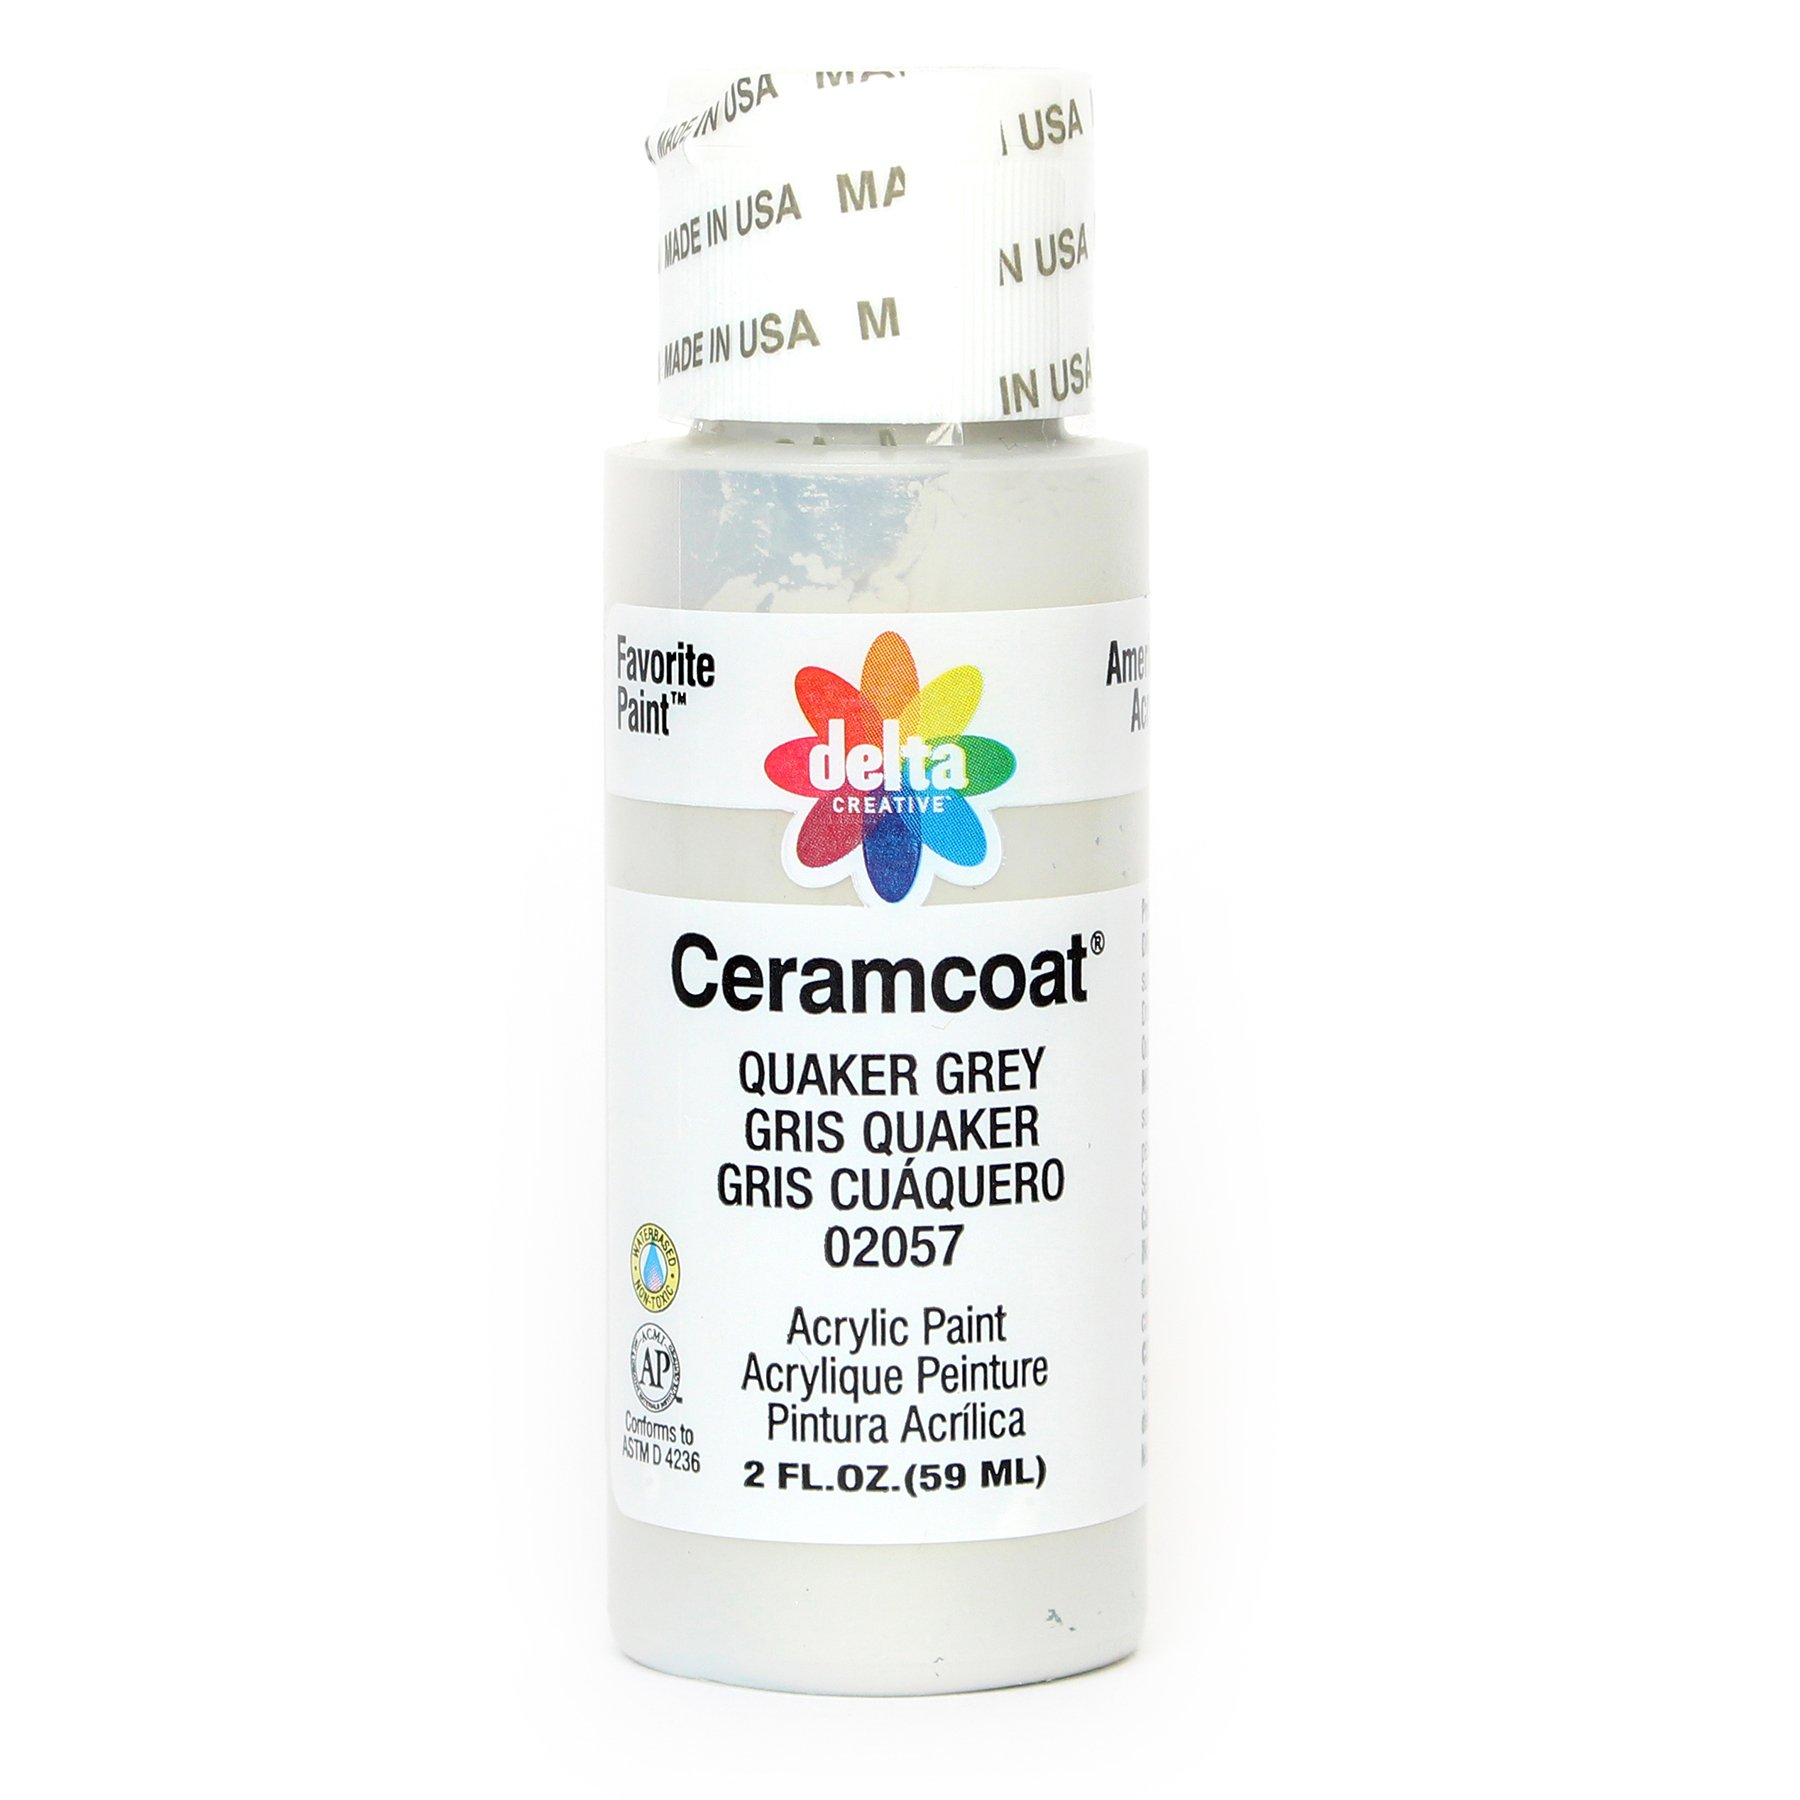 Delta Creative Ceramcoat Acrylic Paint in Assorted Colors (2 oz), 2057, Quaker Grey